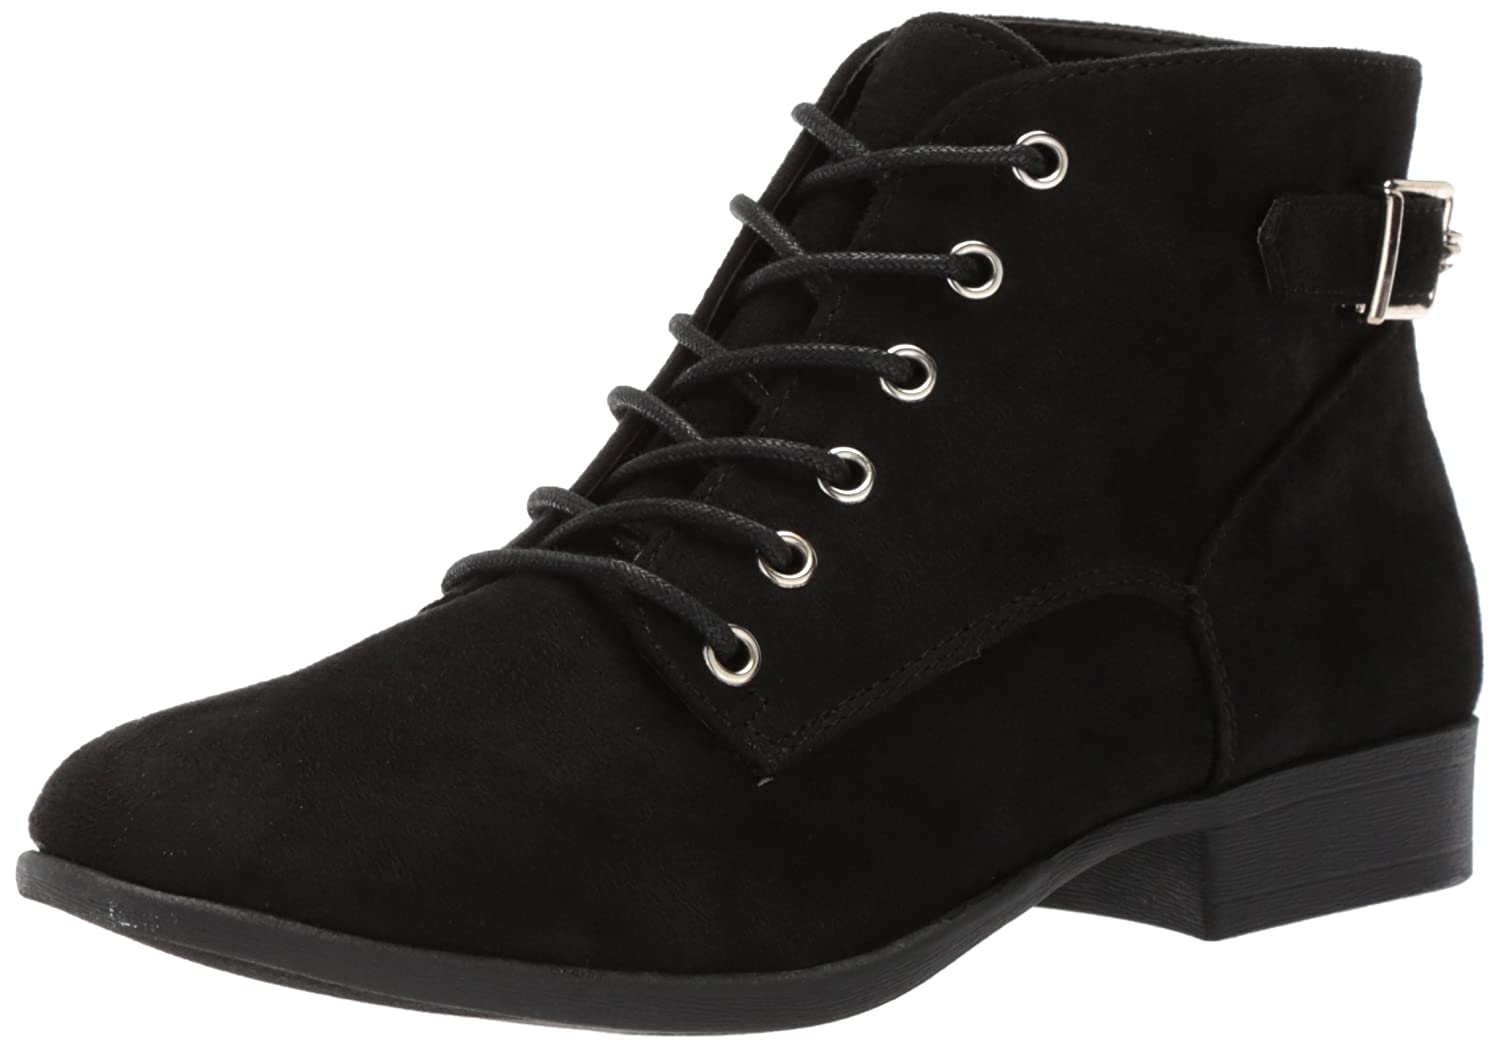 Call It Spring Women's Gitana Ankle Bootie B06ZZD3CLS 10 B(M) US|Black Nubuck